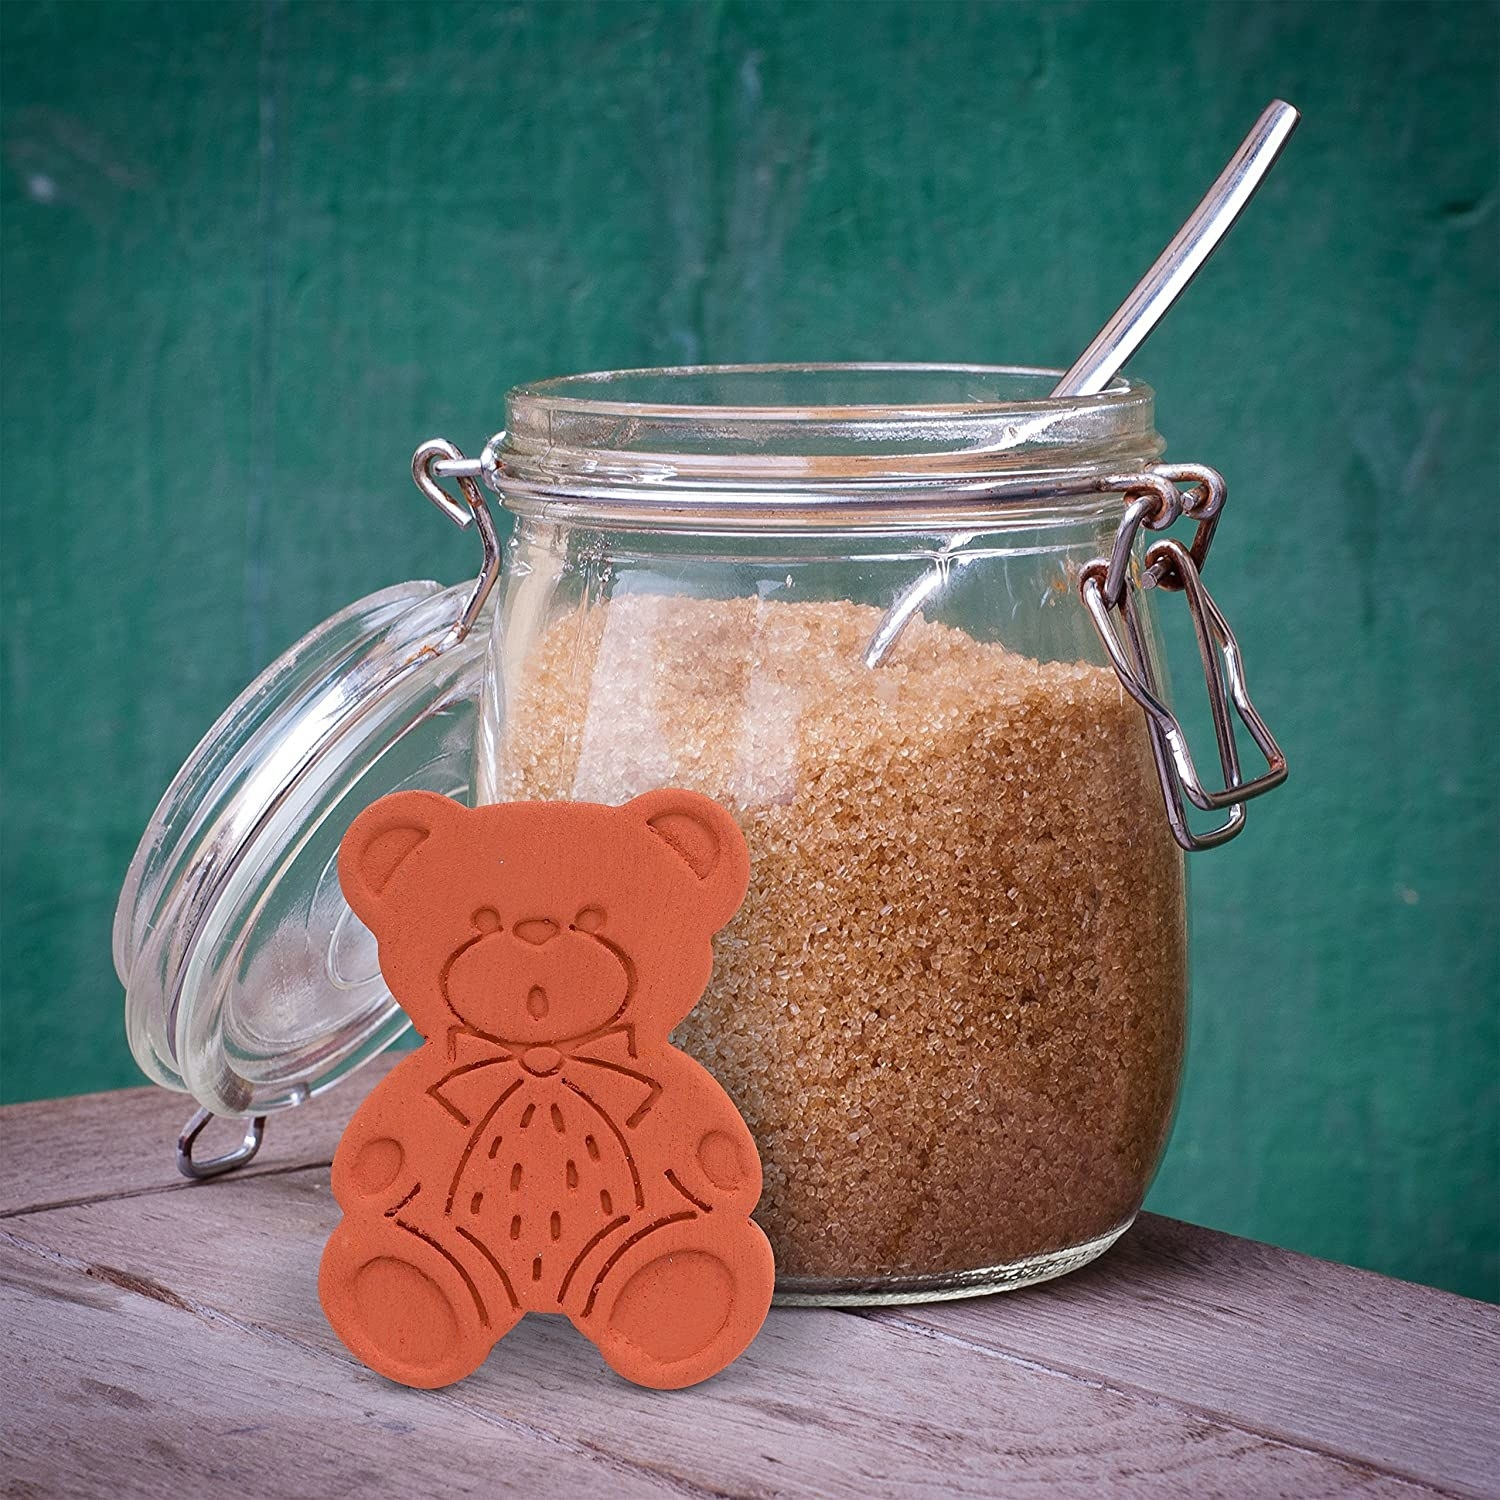 Brown sugar bear on table next to jar of sugar